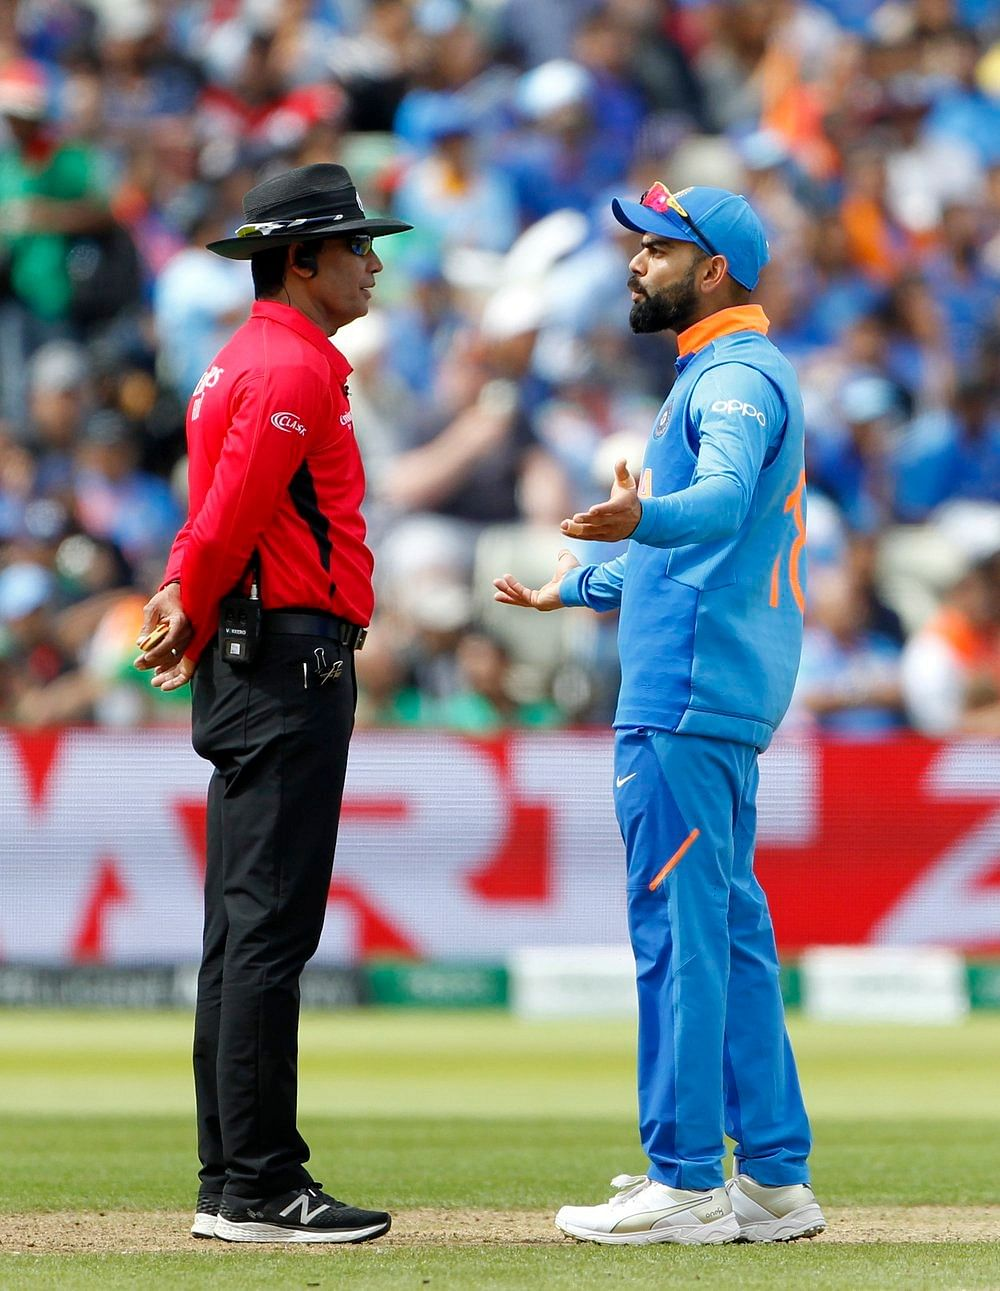 Indian captain Virat Kohli in conversation with the Umpire during a match between India and Bangladesh in ICC CWC 2019 at Edgbaston in Birmingham on Tuesday